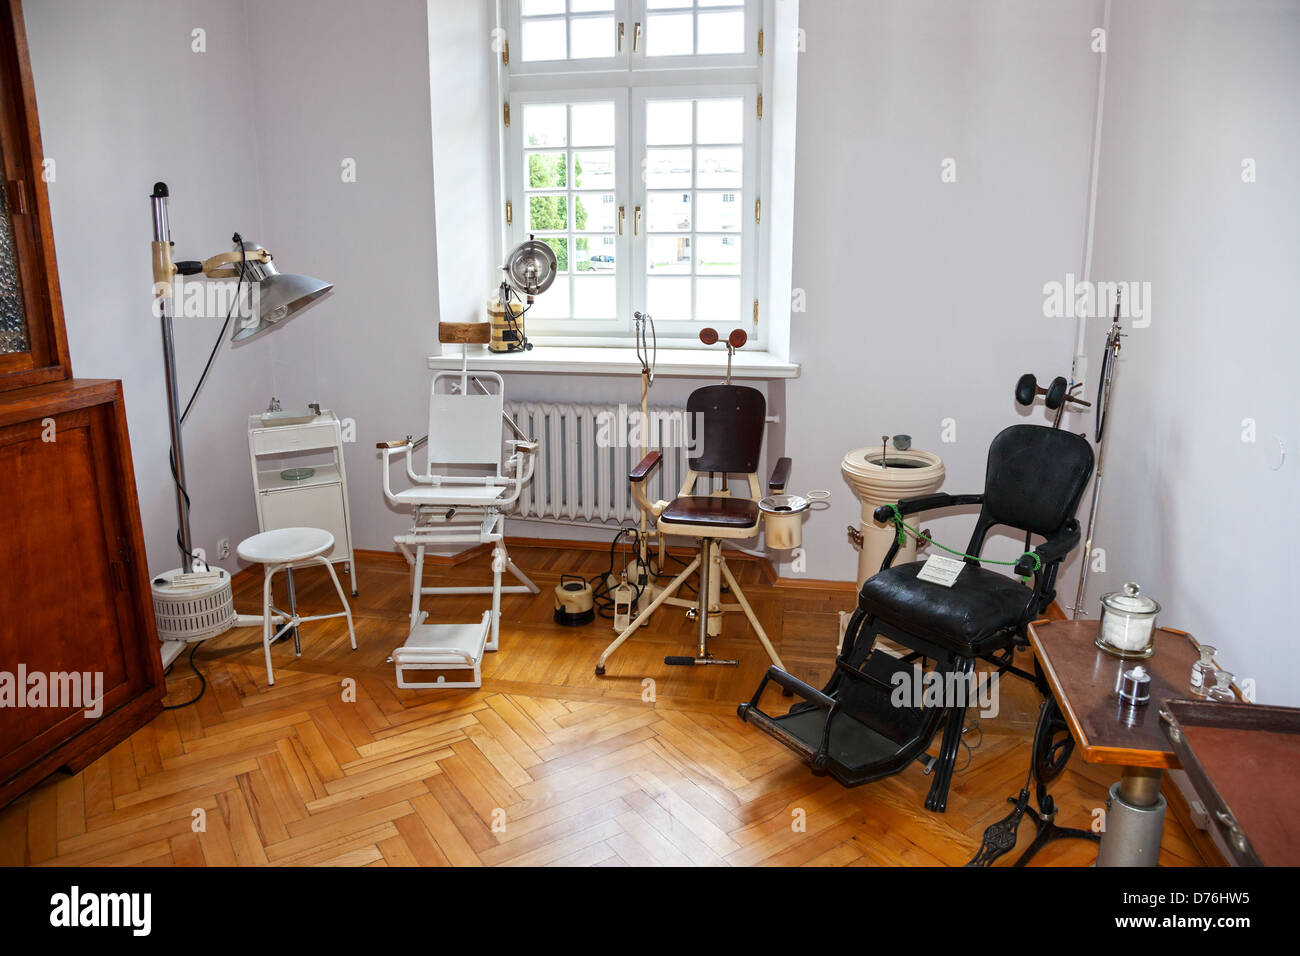 Vintage dentist chair and equipment of the last century. - Stock Image - Ancient Antique Dental Chair Stock Photos & Ancient Antique Dental